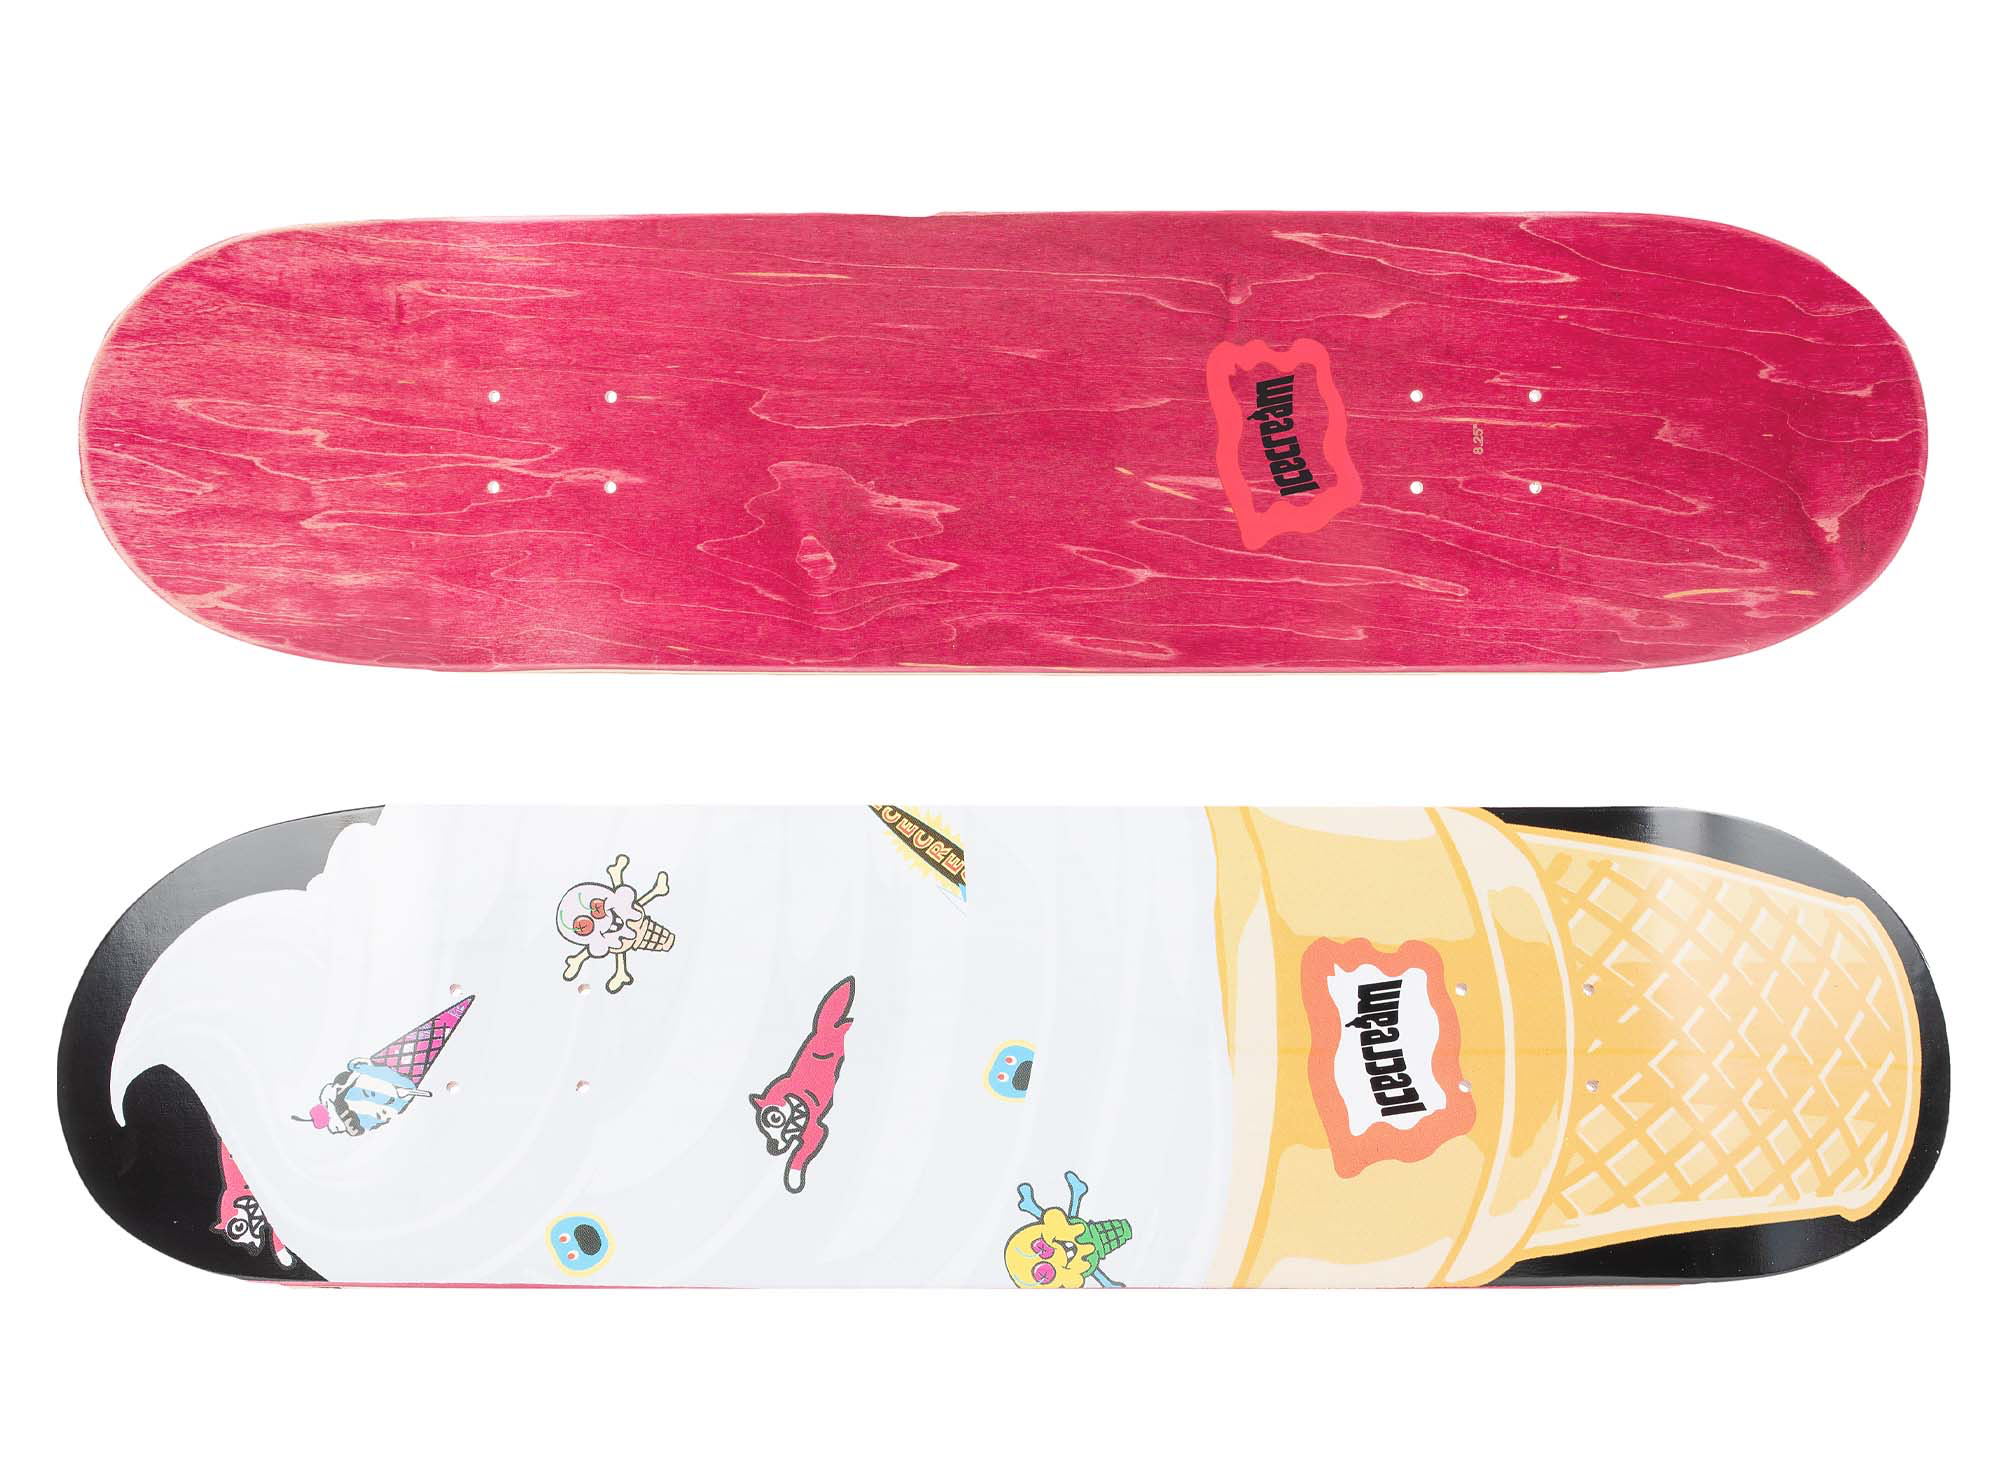 ICECREAM Swirl Skate Deck